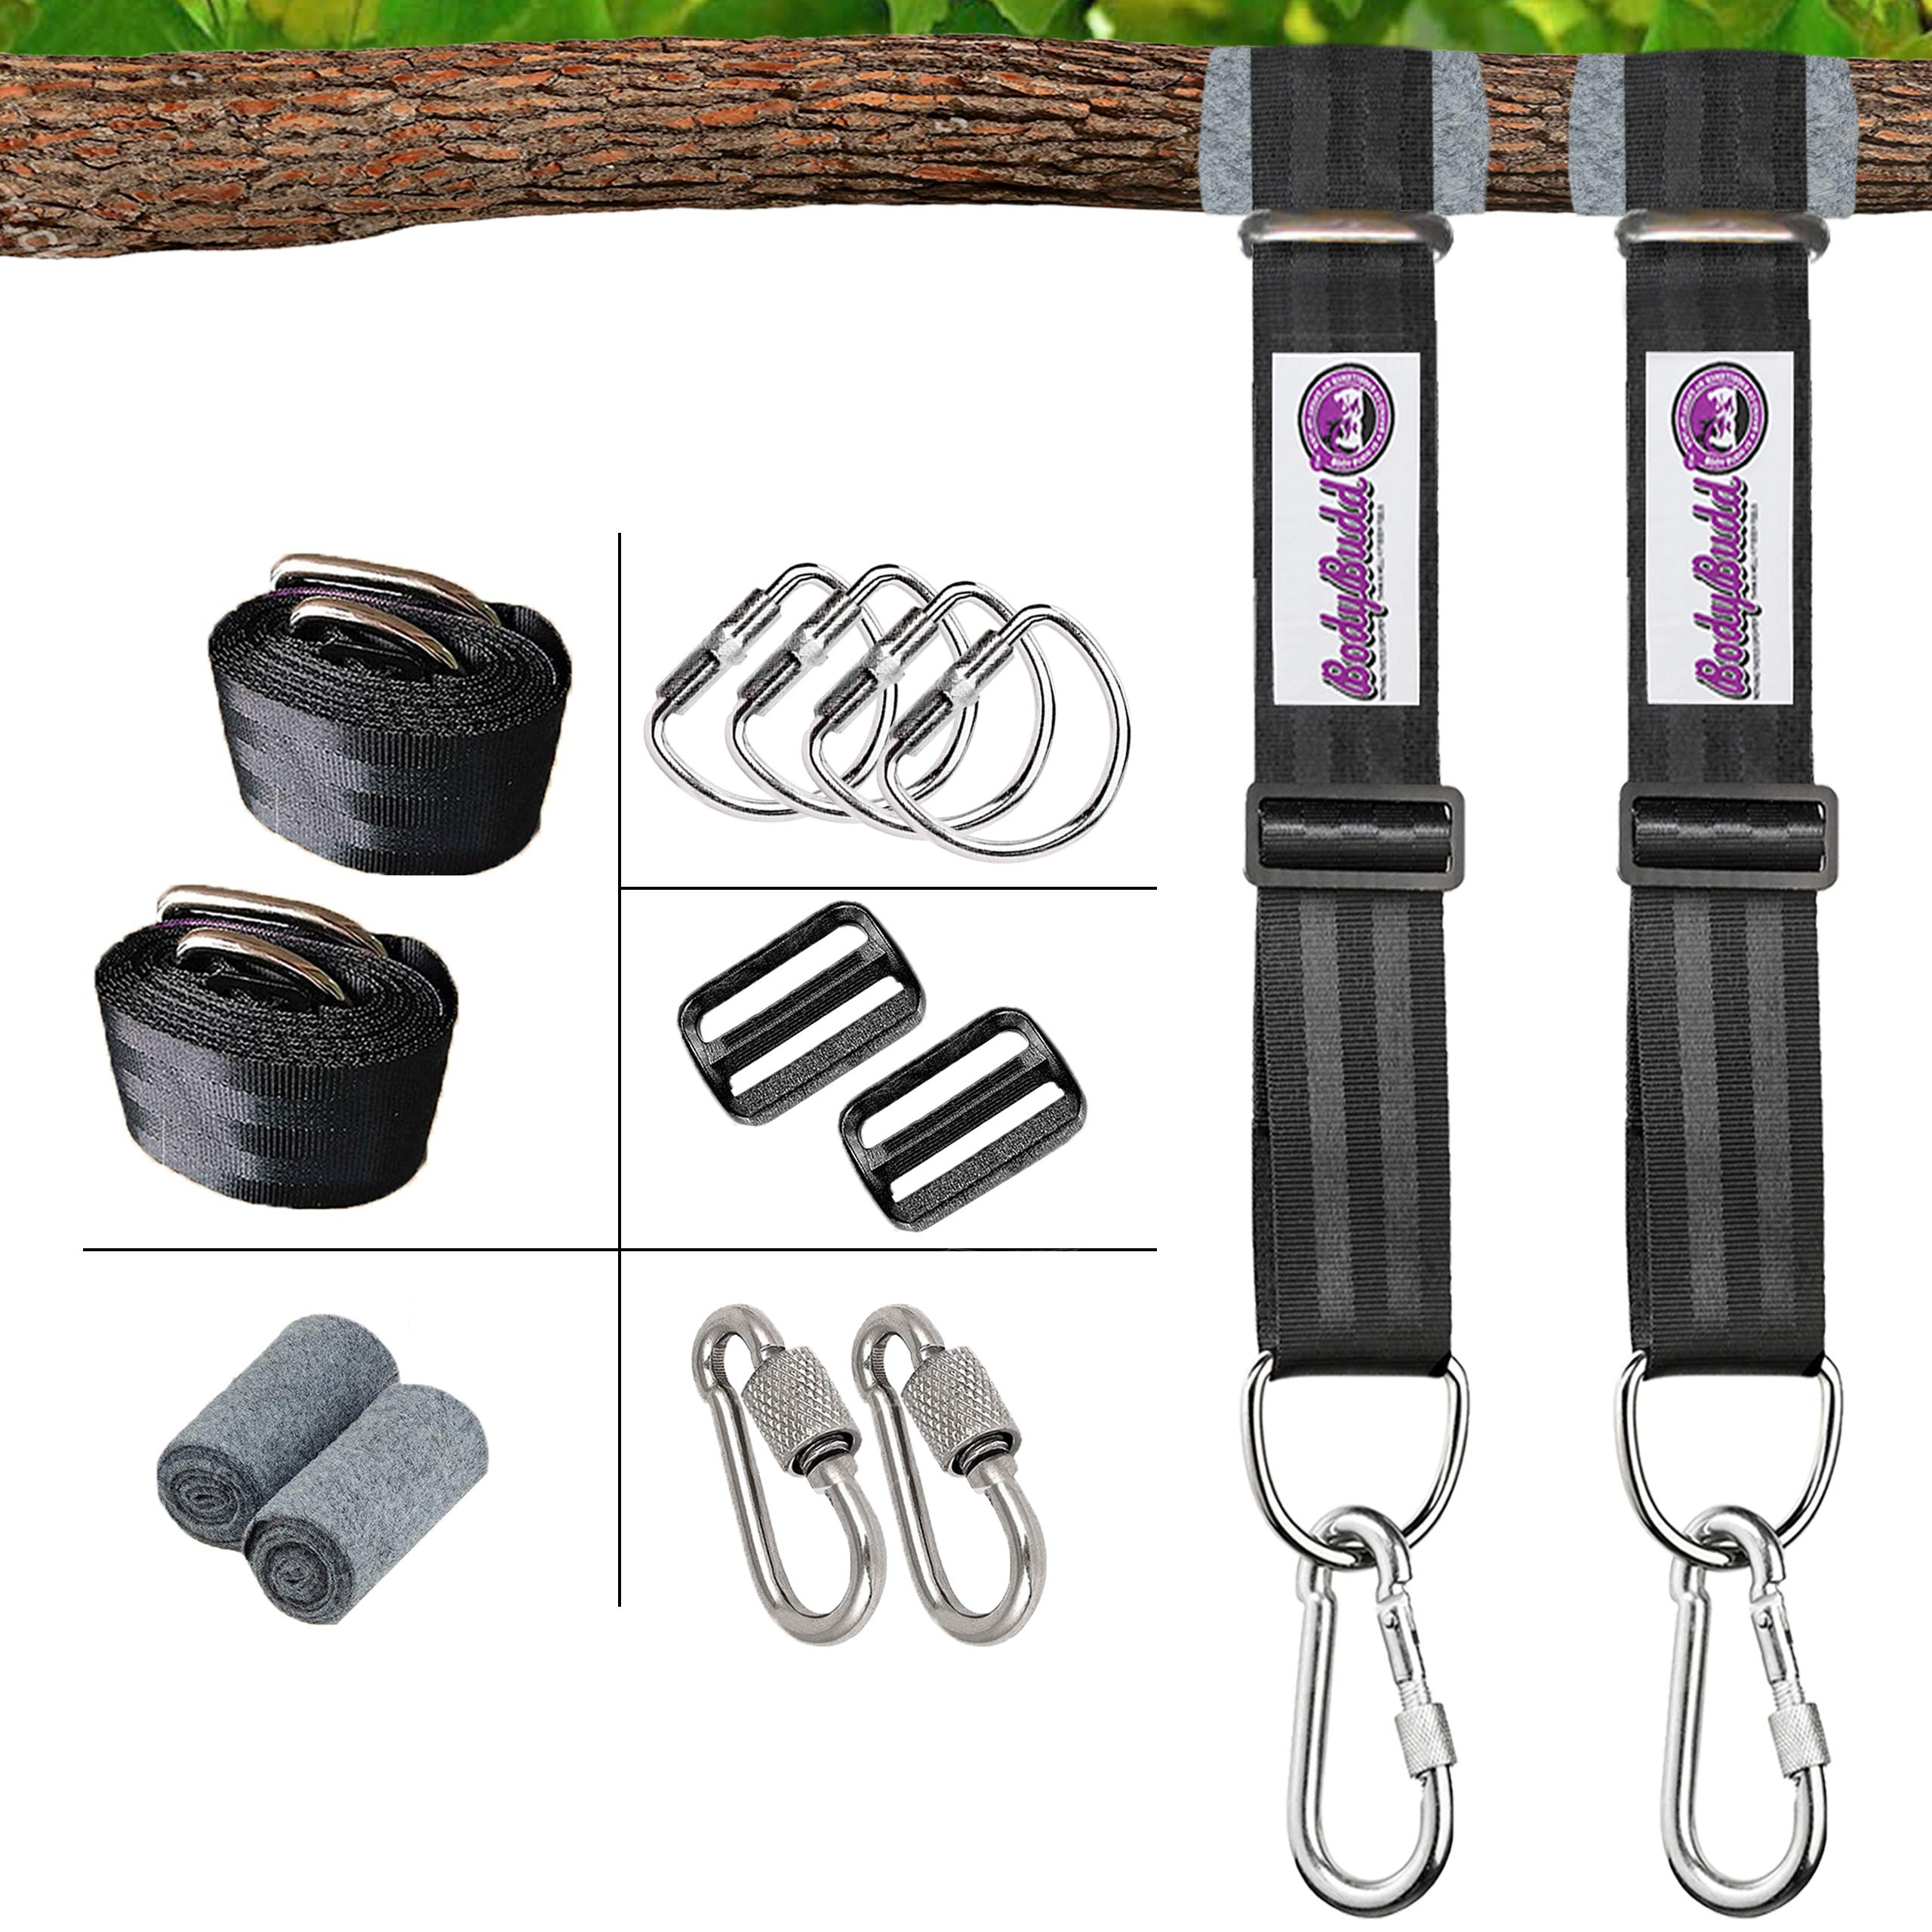 BodyBudd Tree Swing Adjustable Straps, Set of 2 (8 FT) Heavy Duty Hanging Kit, with Safety Lock Carabiner, and Tree Protector. Choice for Porch Swings, Hammocks, Tires, Saucers.